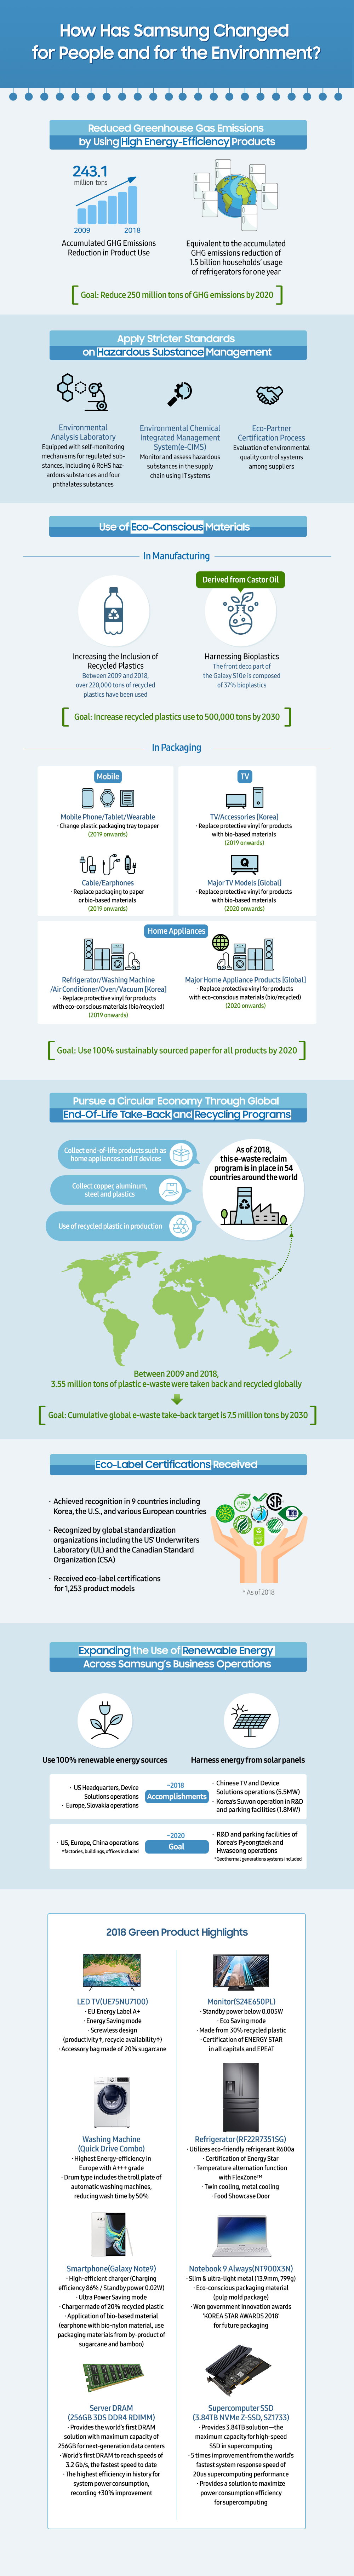 [Infographic] Samsung Electronics' green business achievements over the last 10 years